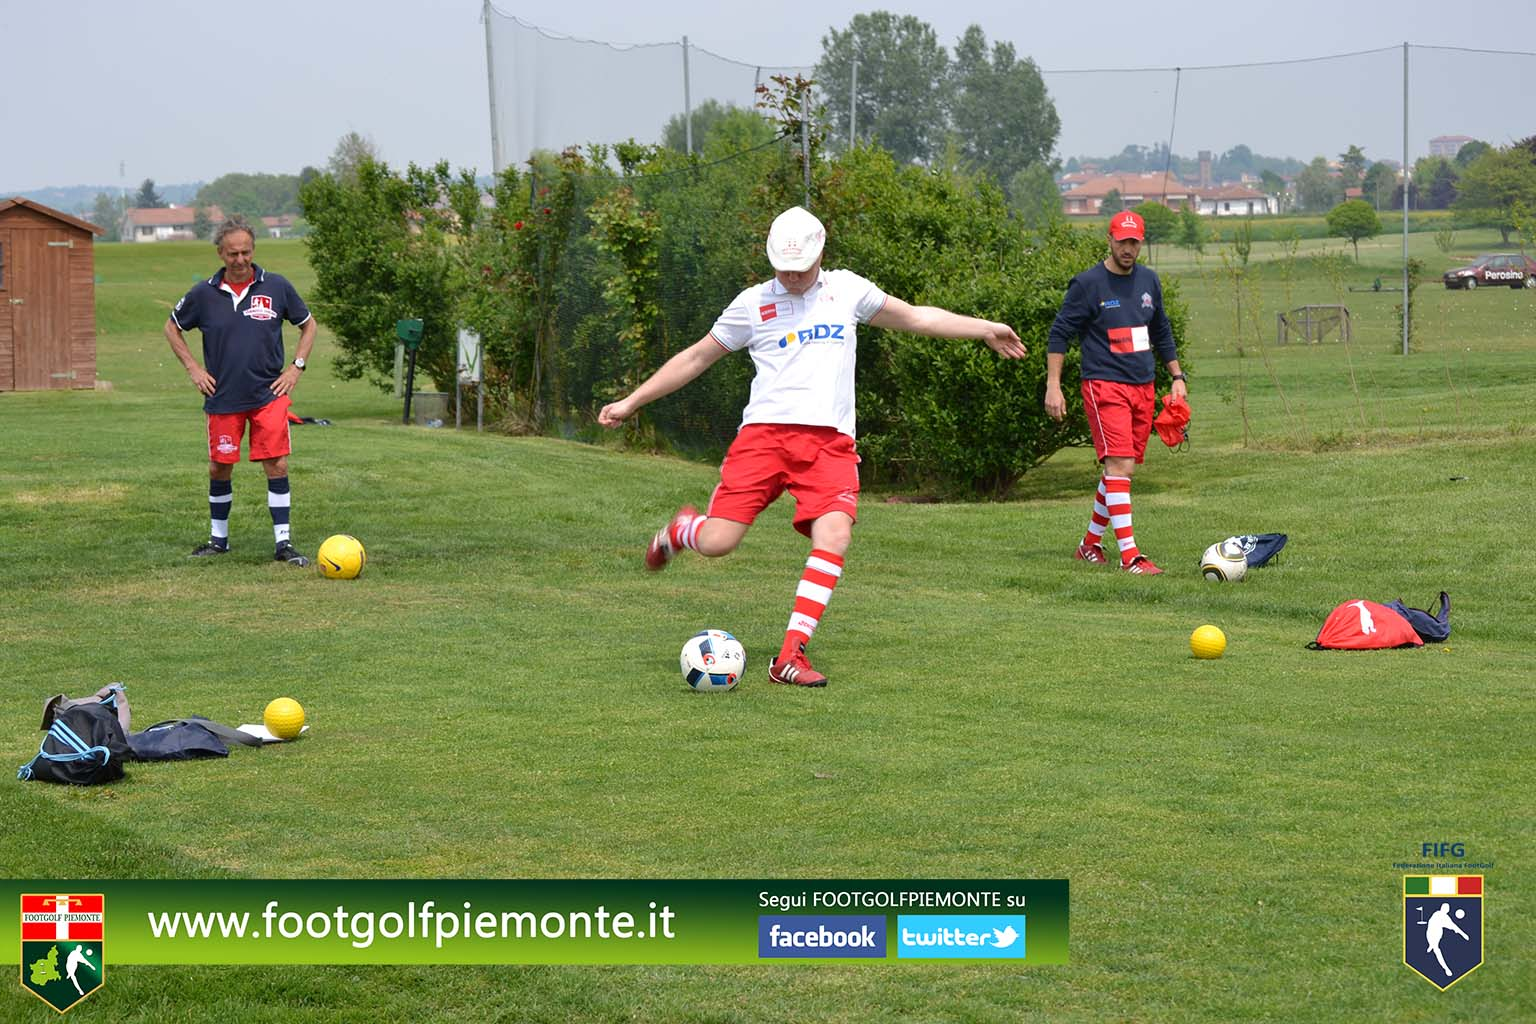 FOTO 9 Regions' Cup Footgolf Piemonte 2016 Golf Città di Asti (At) 30apr16-16